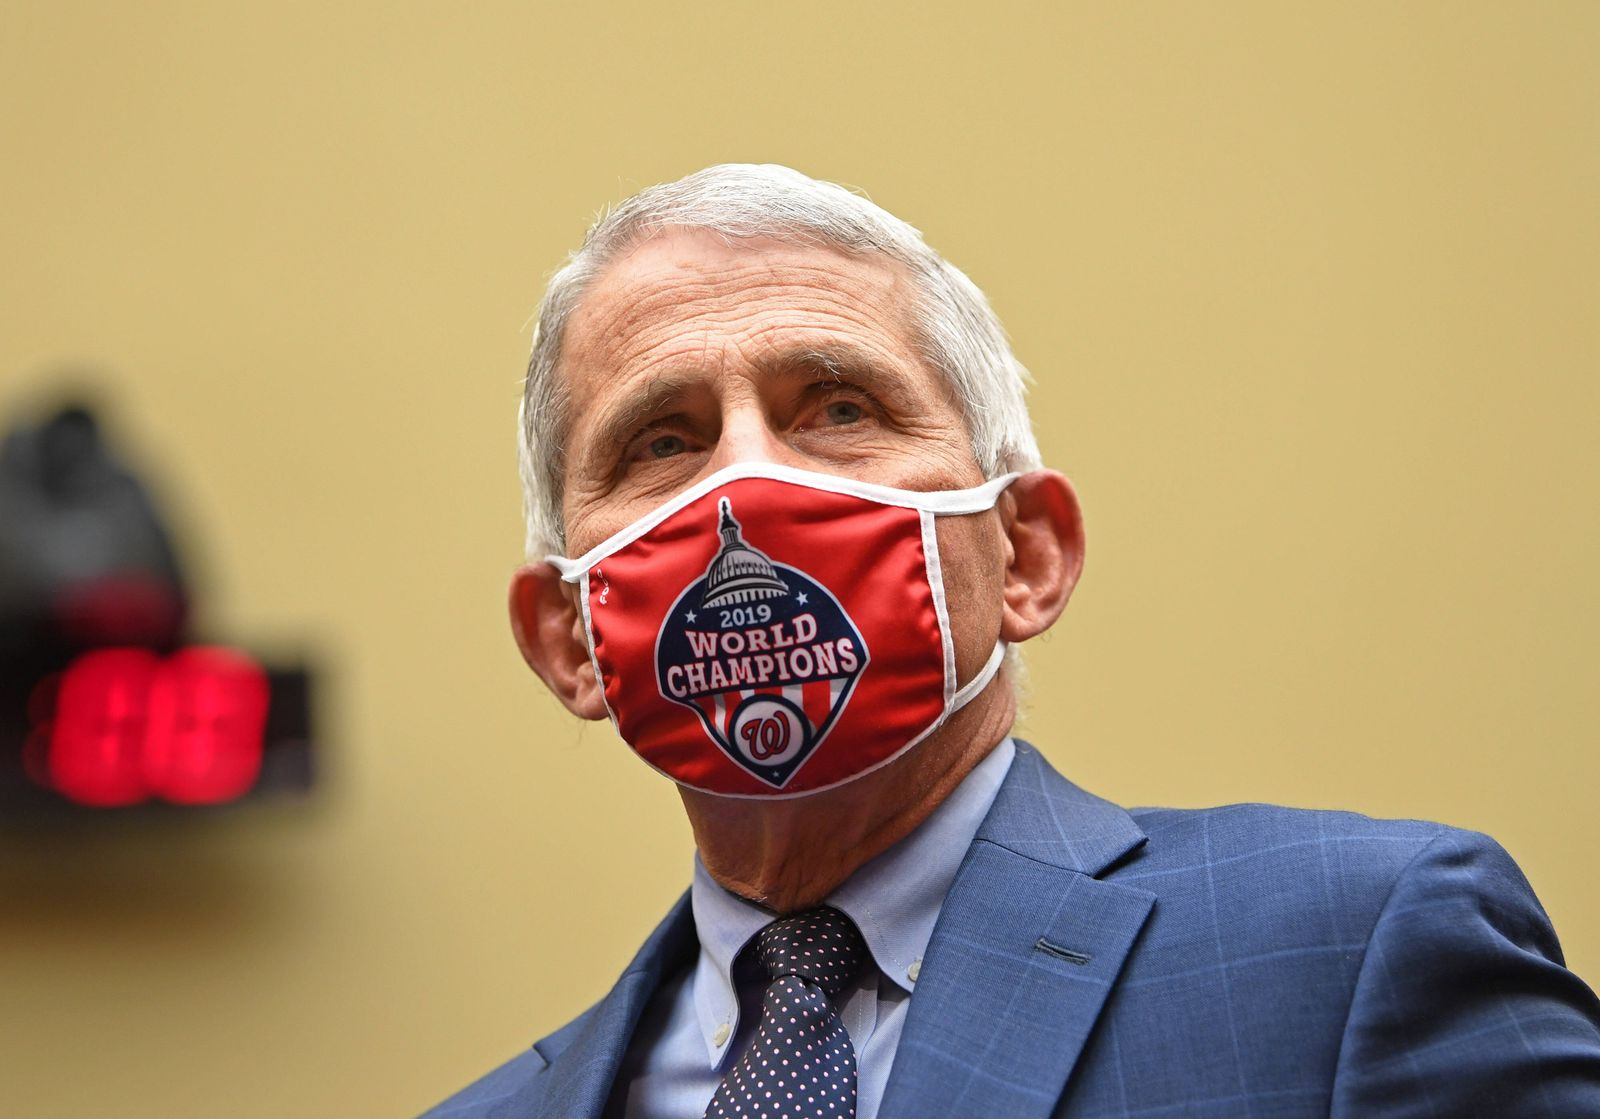 News Bilder des Tages Dr. Anthony Fauci, director of the National Institute for Allergy and Infectious Diseases, arrives